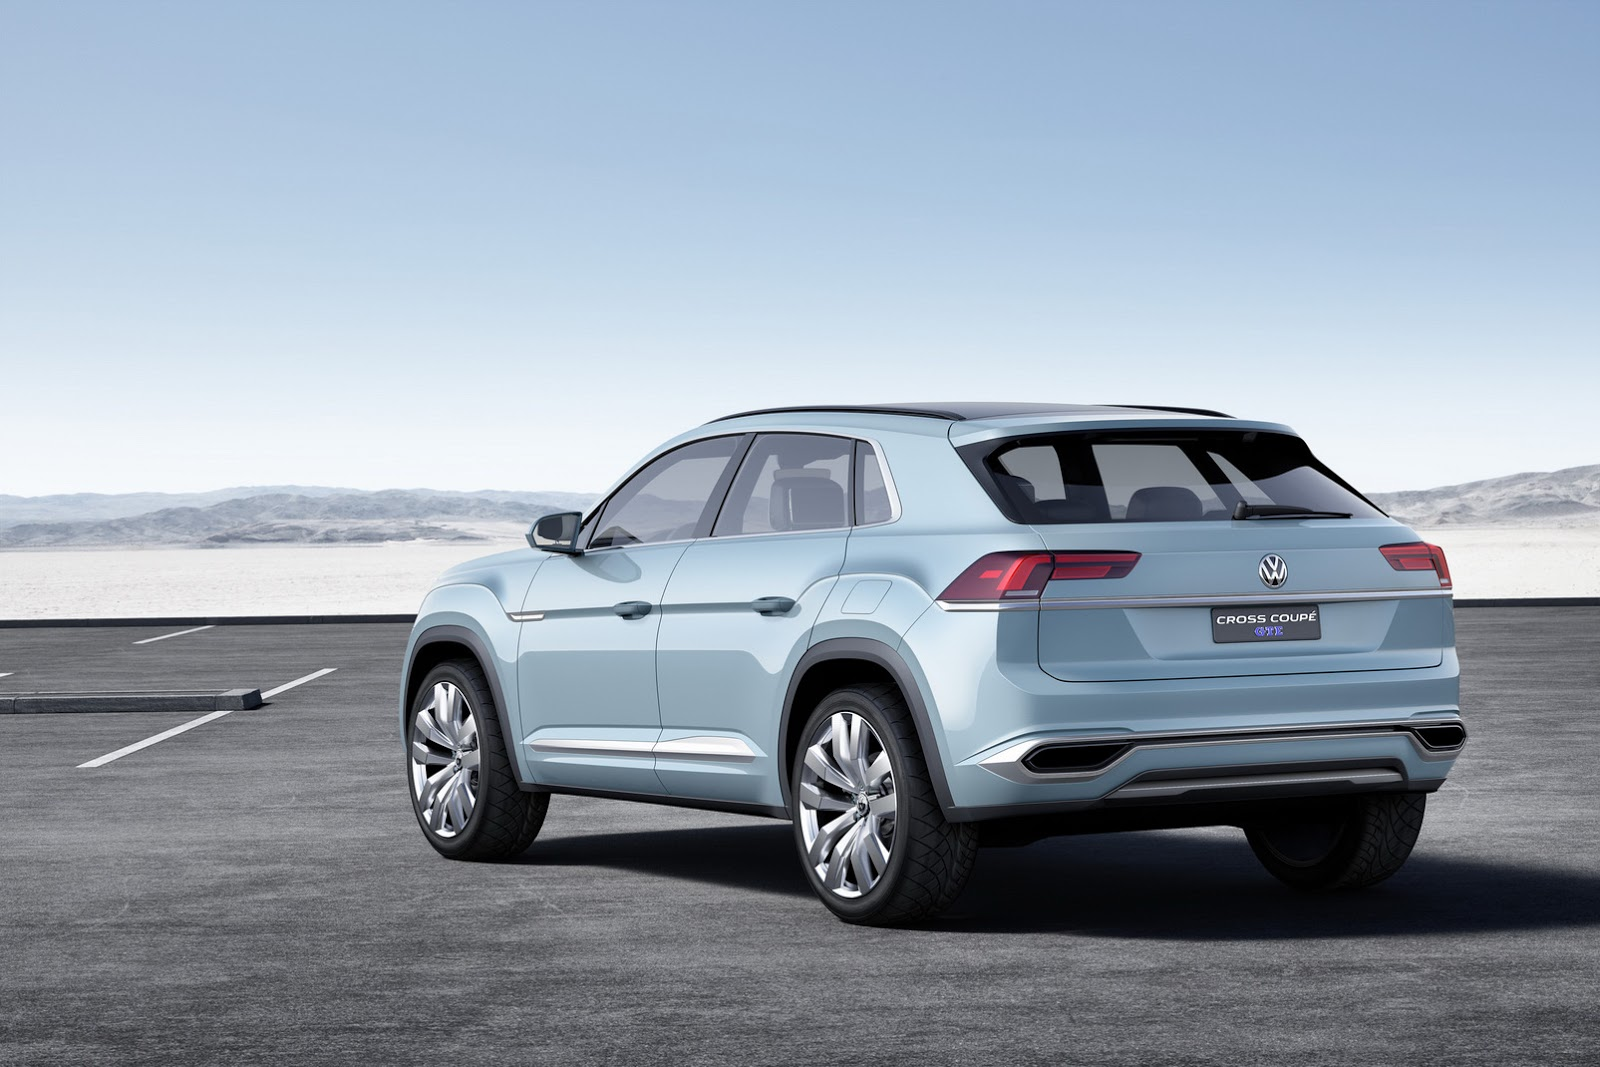 vw cross coupe gte concept hints at new mid size crossover for u s carscoops. Black Bedroom Furniture Sets. Home Design Ideas